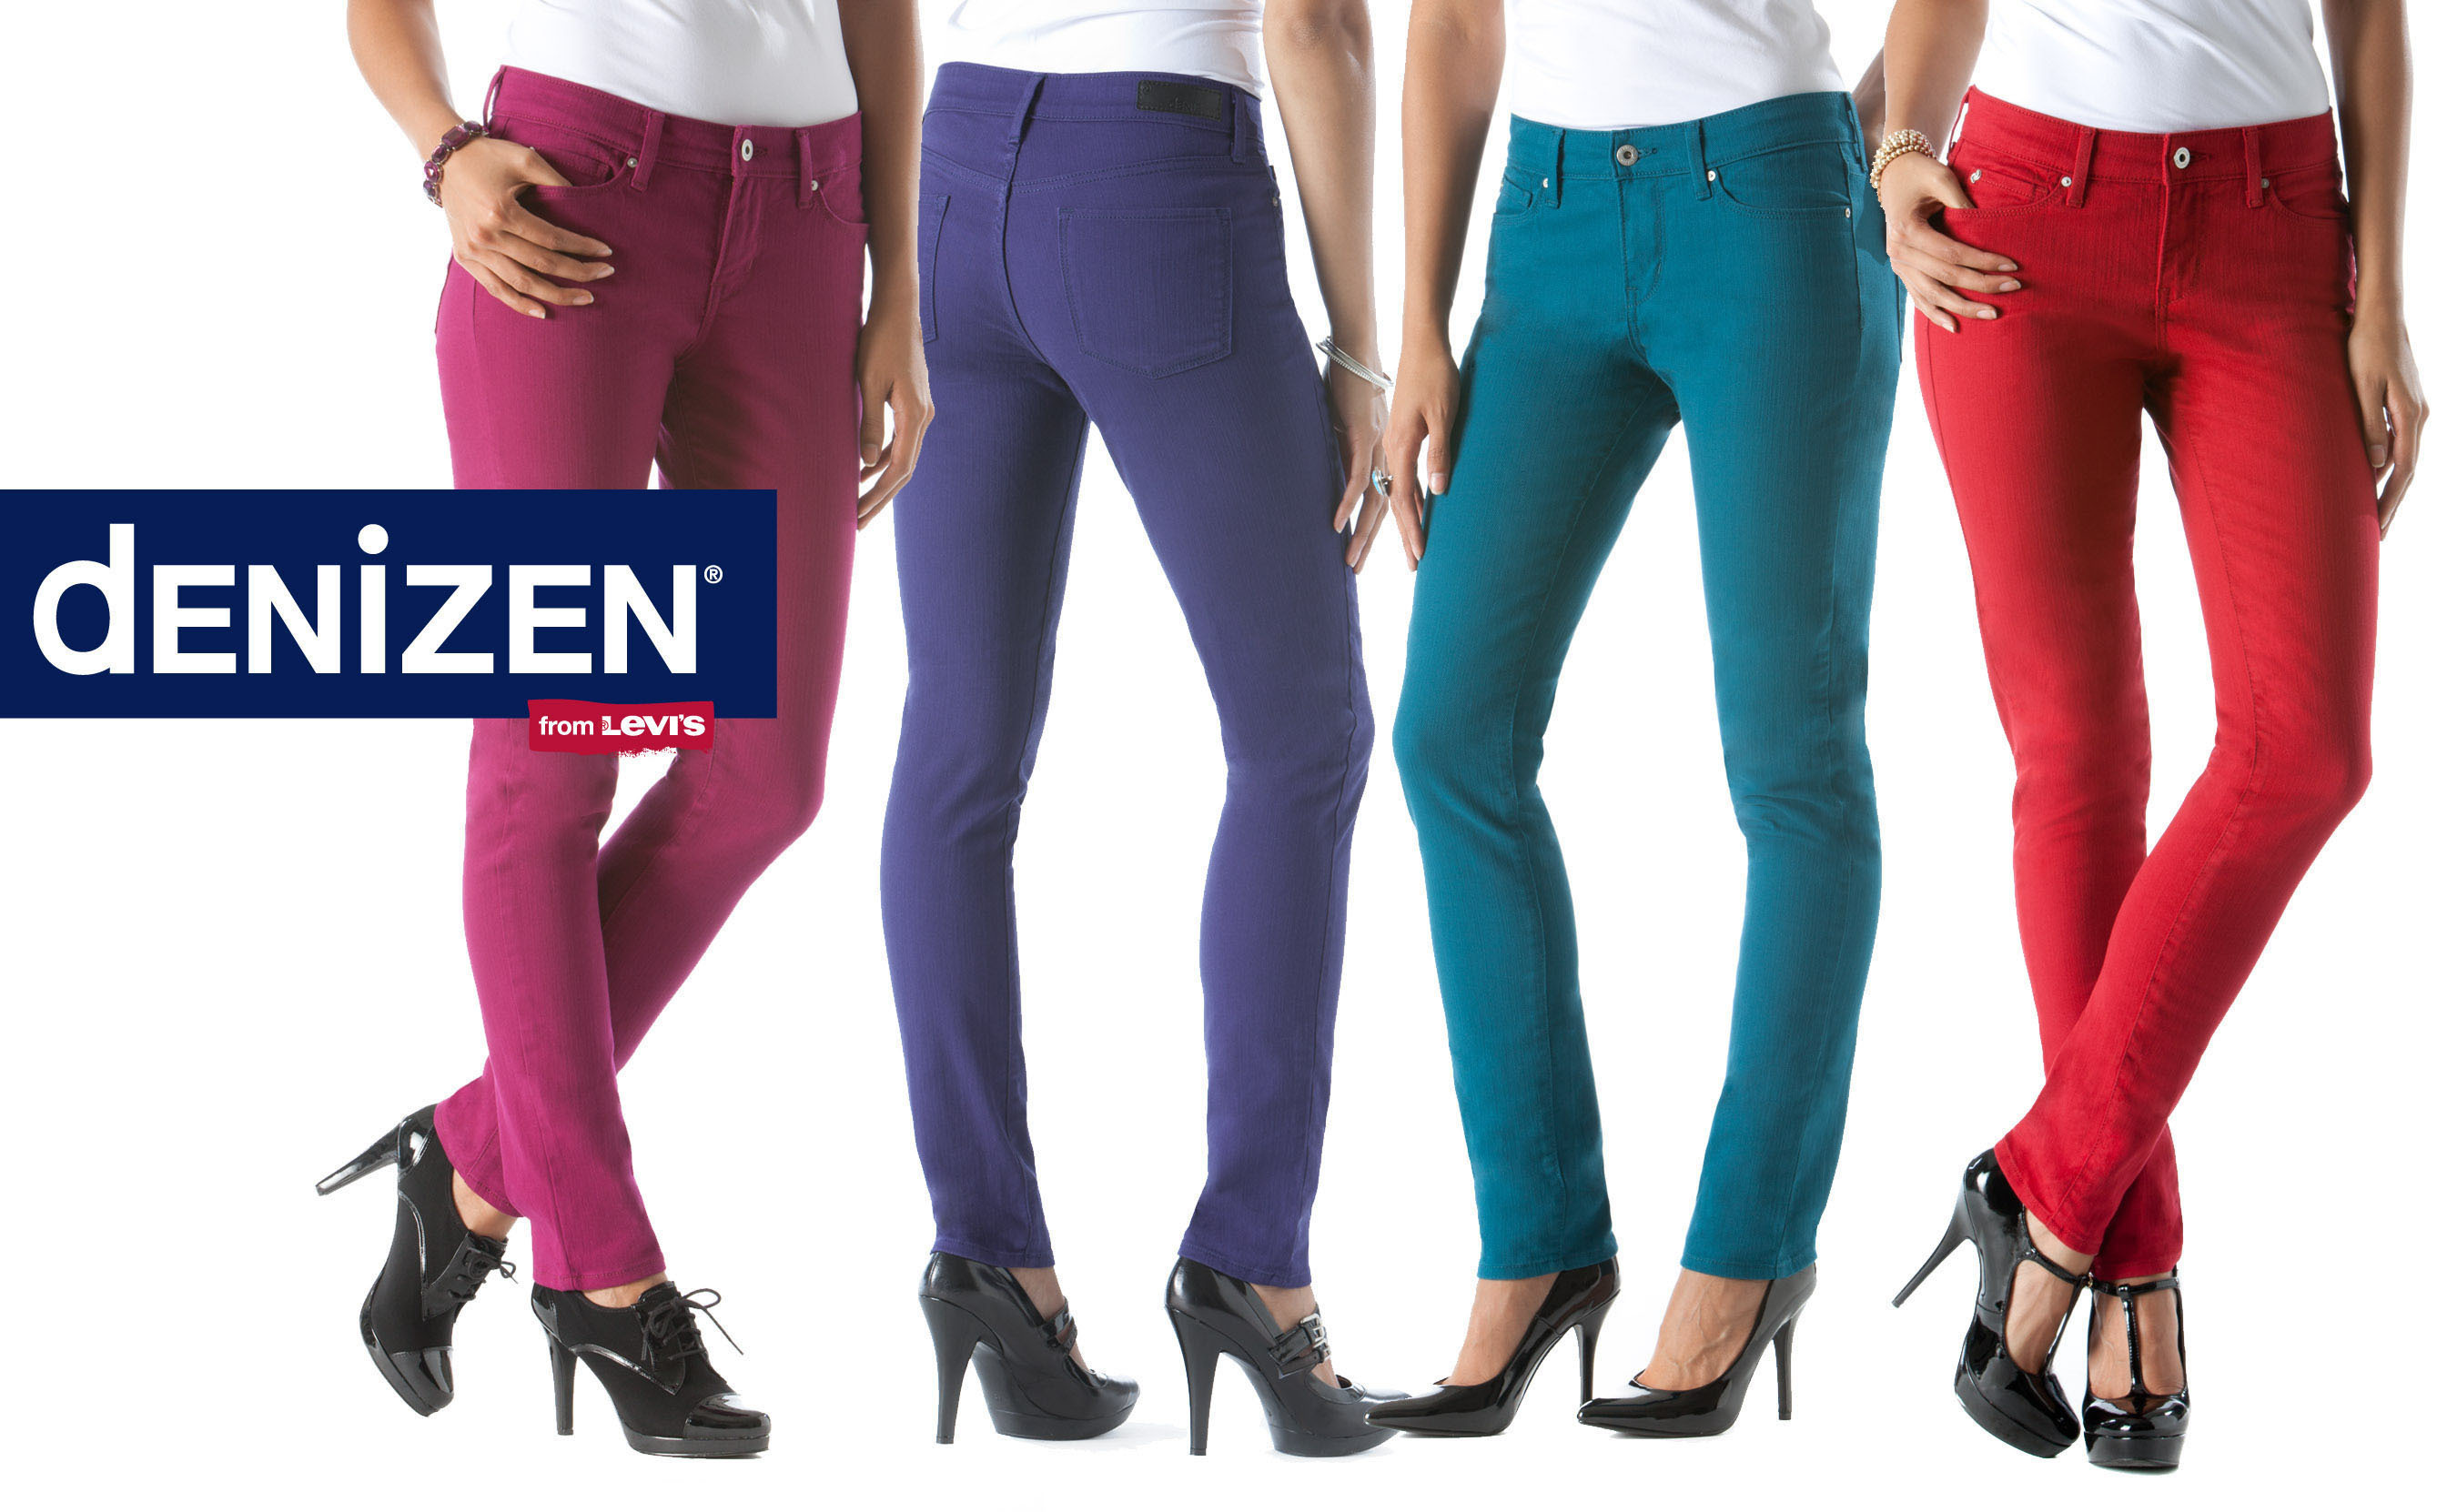 DENIZEN COLORED DENIM – THE HOTSPOTORLANDO